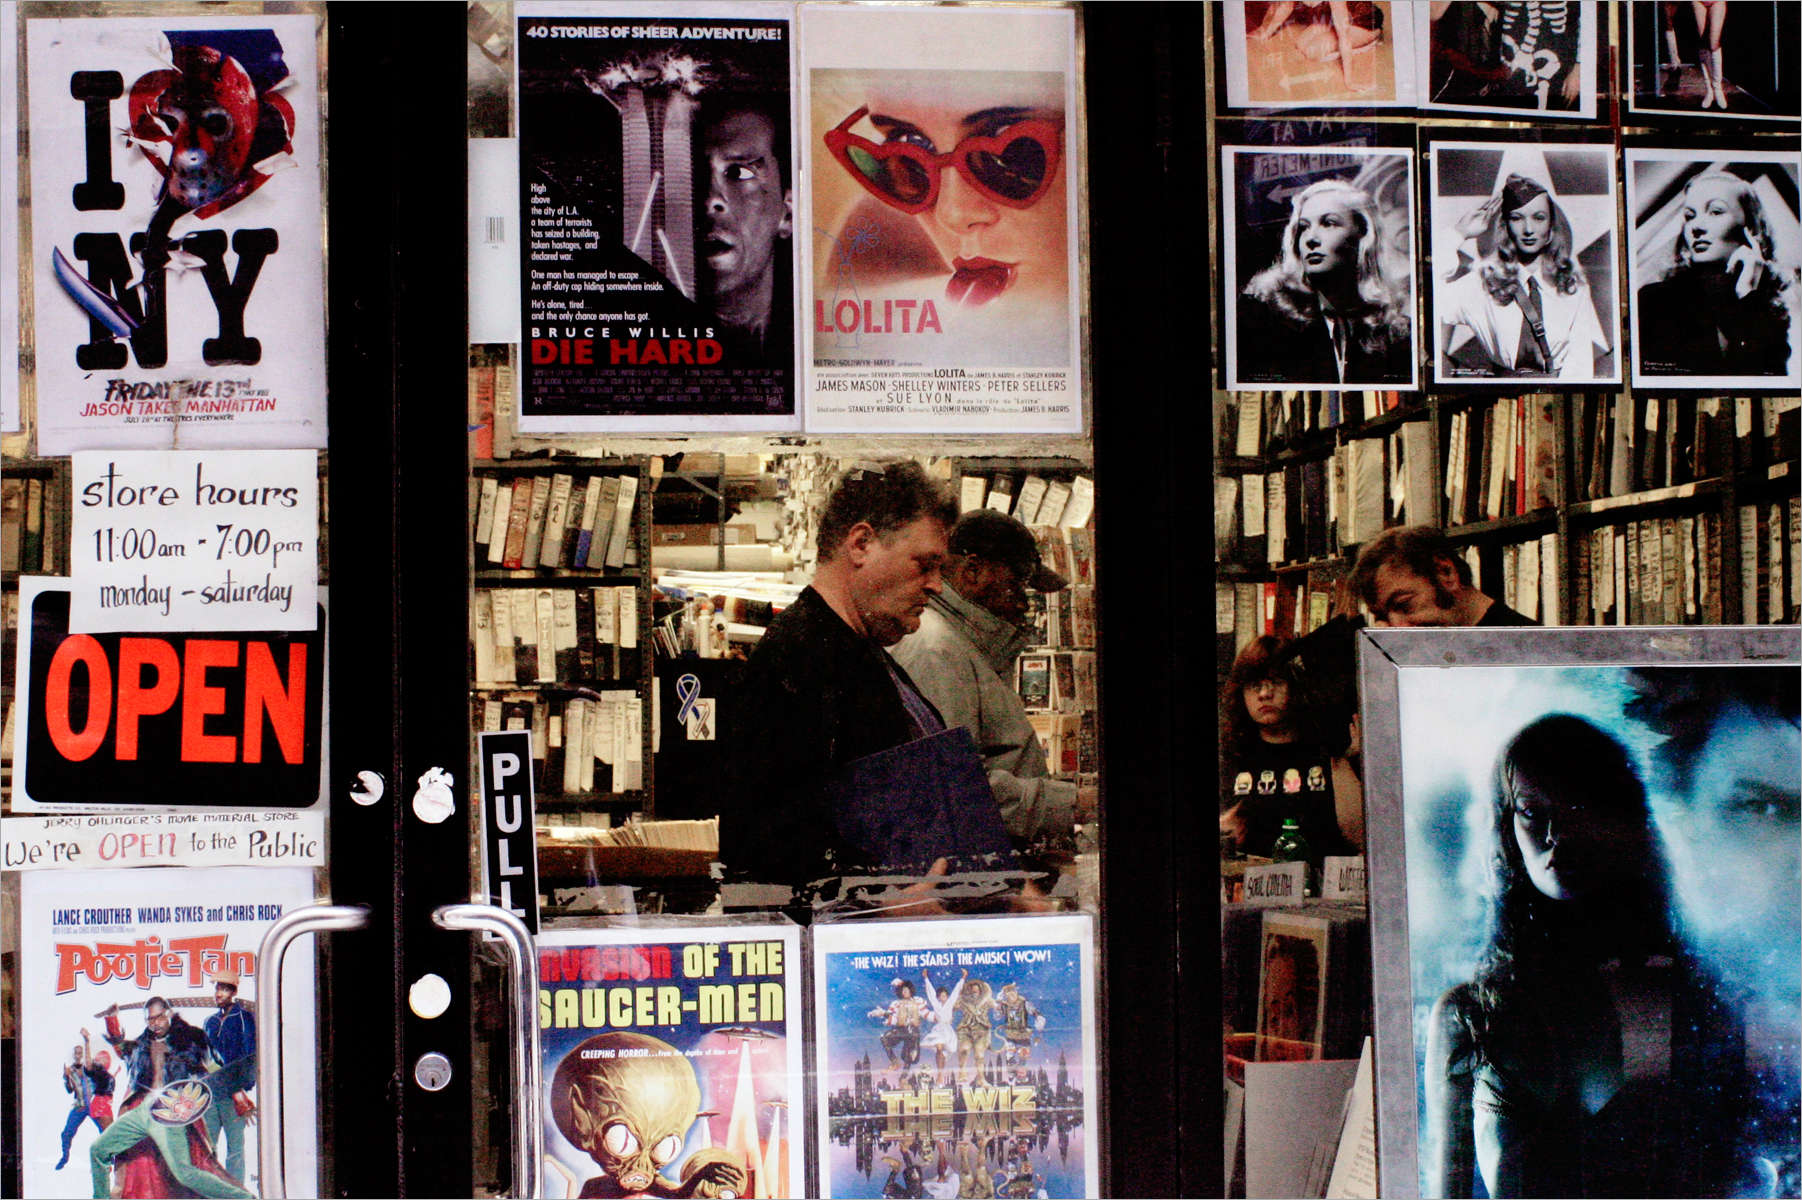 Jerry Ohlinger's Movie Material Store, West 35th Street, November 2005. Photo by Samantha Box2005 © Samantha Box